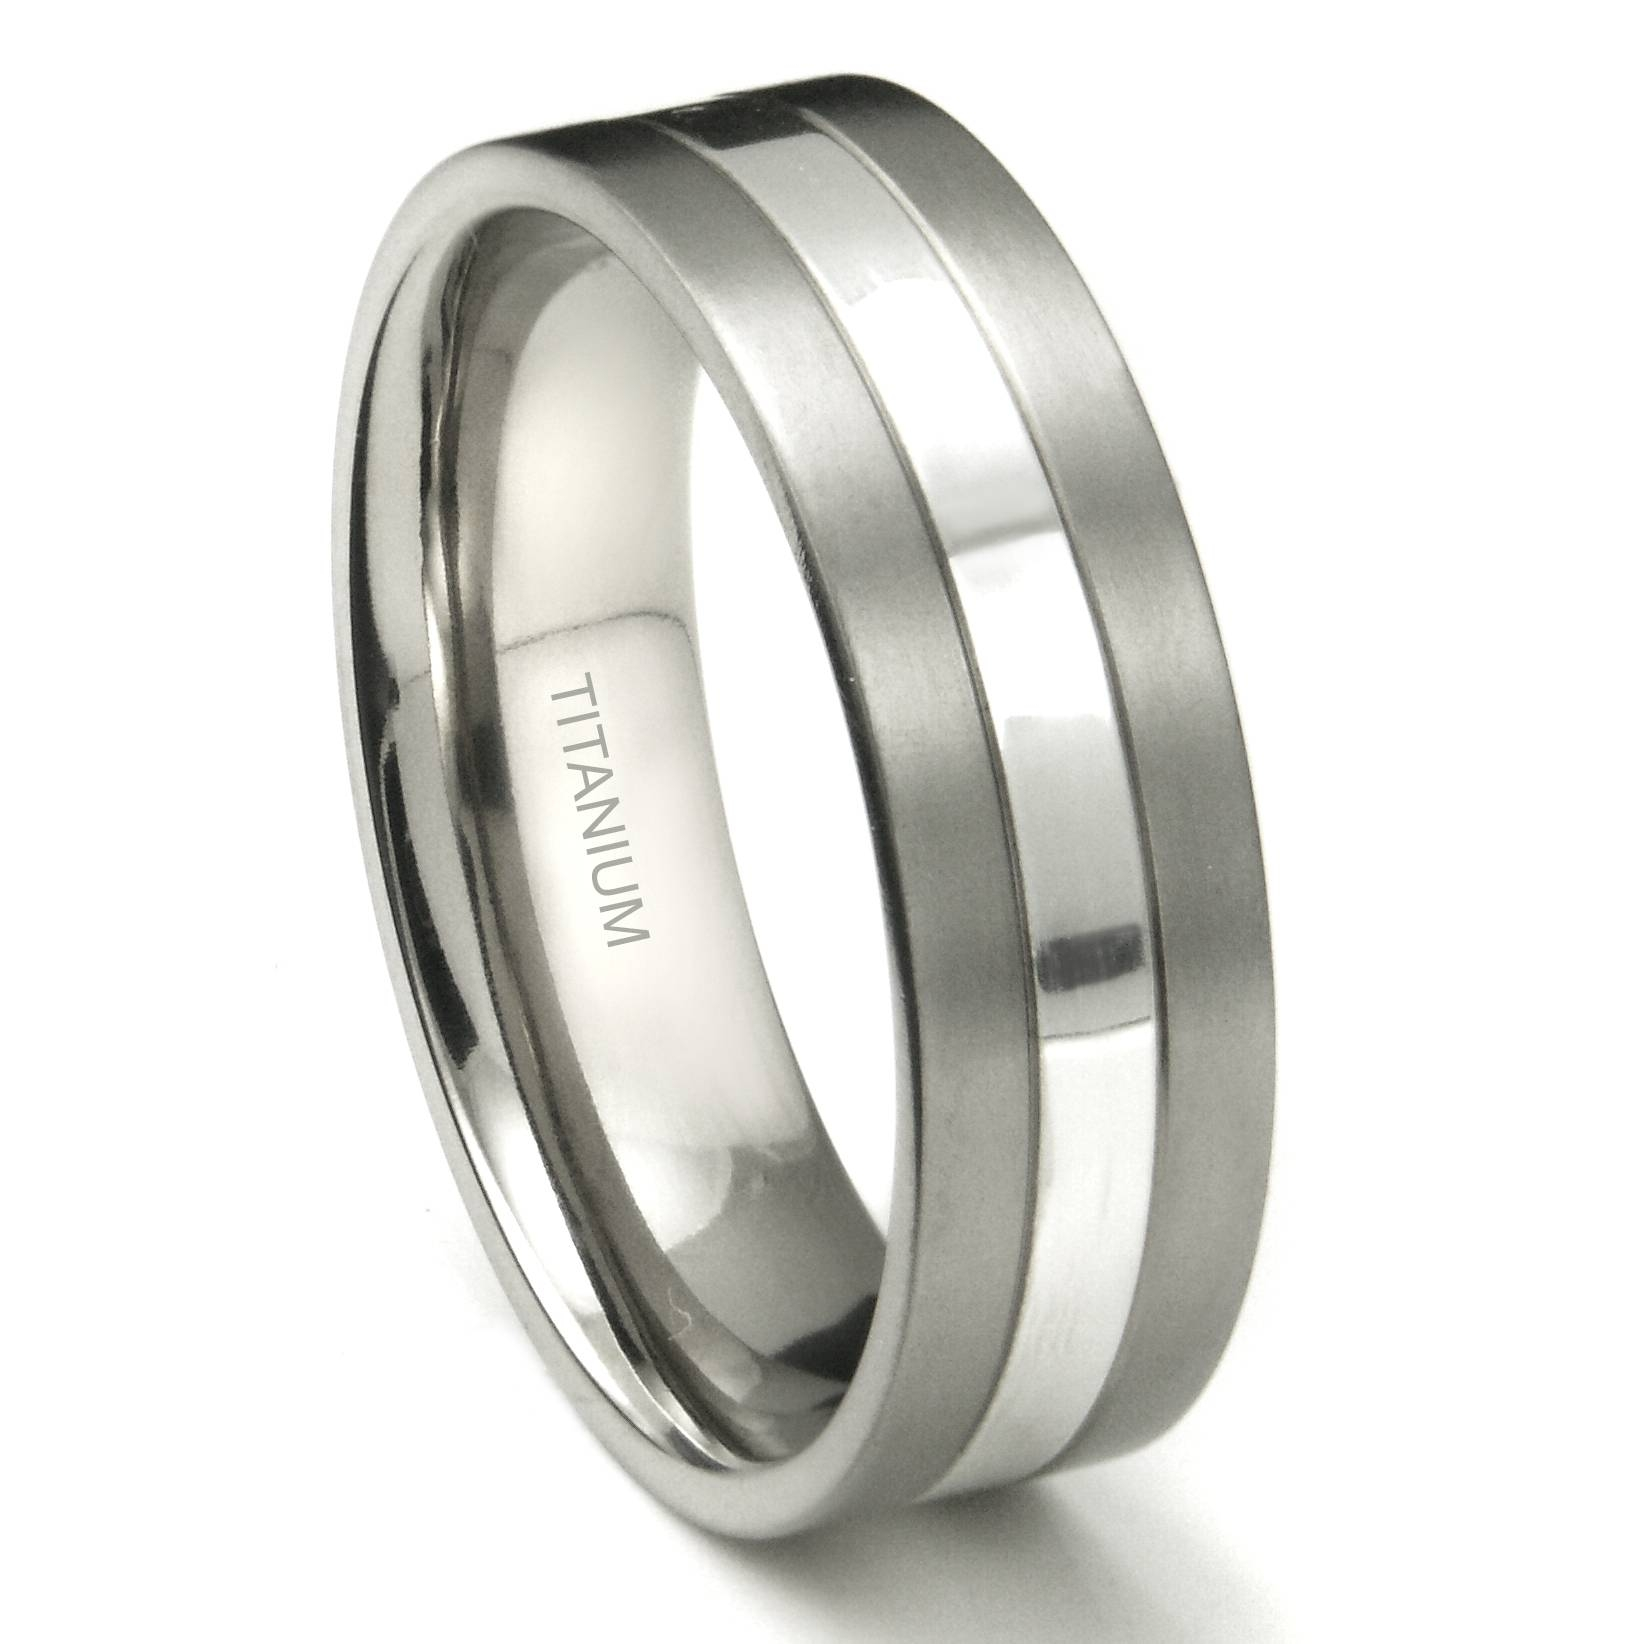 Titanium 7Mm Two Tone Wedding Ring Intended For Titanium Mens Wedding Rings (View 10 of 15)